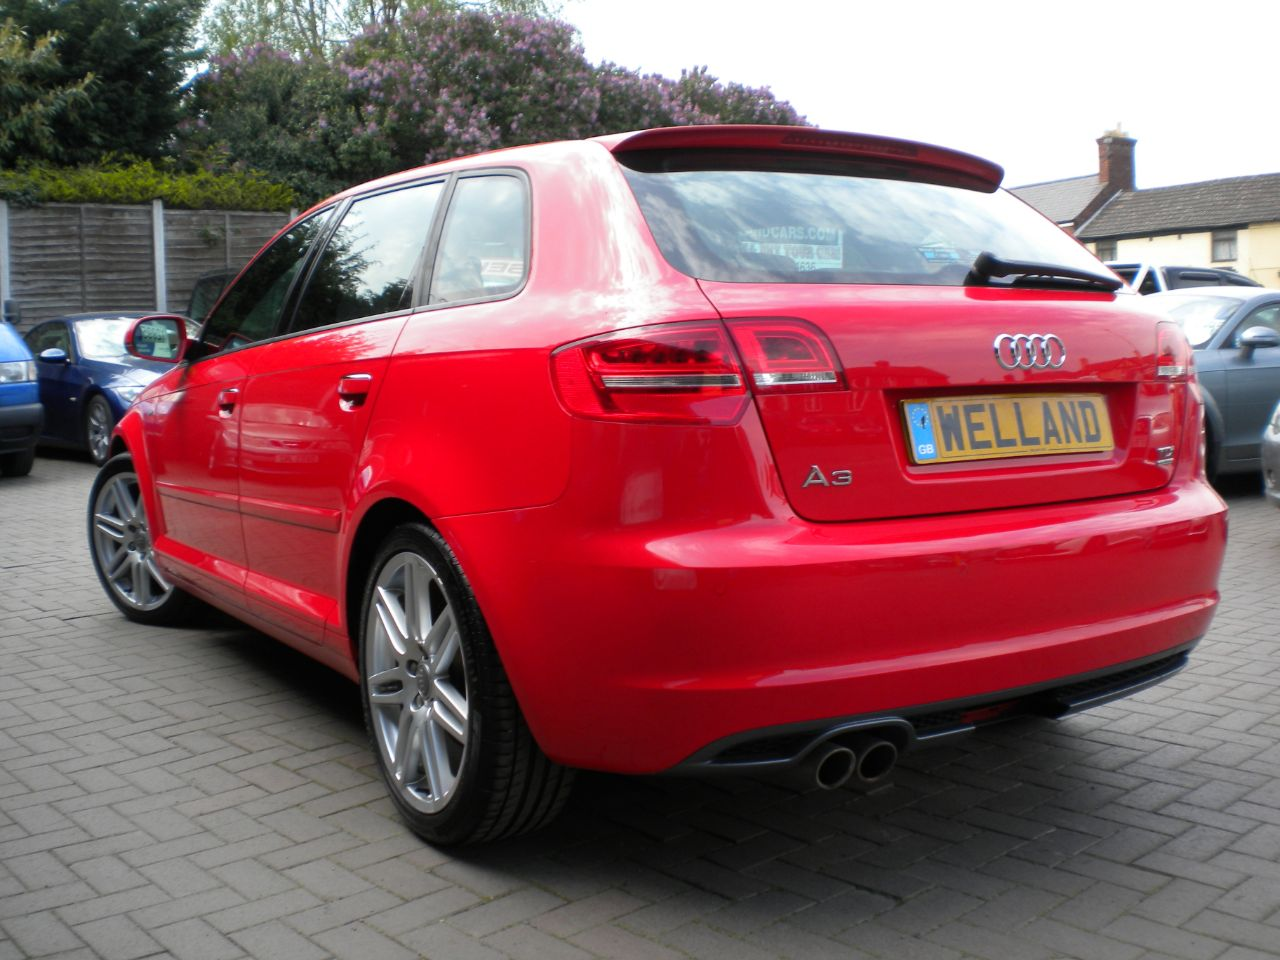 used audi a3 2 0 tdi 170 quattro s line 5dr sportback f s h 1owner towpack 18 alloys 15 month. Black Bedroom Furniture Sets. Home Design Ideas